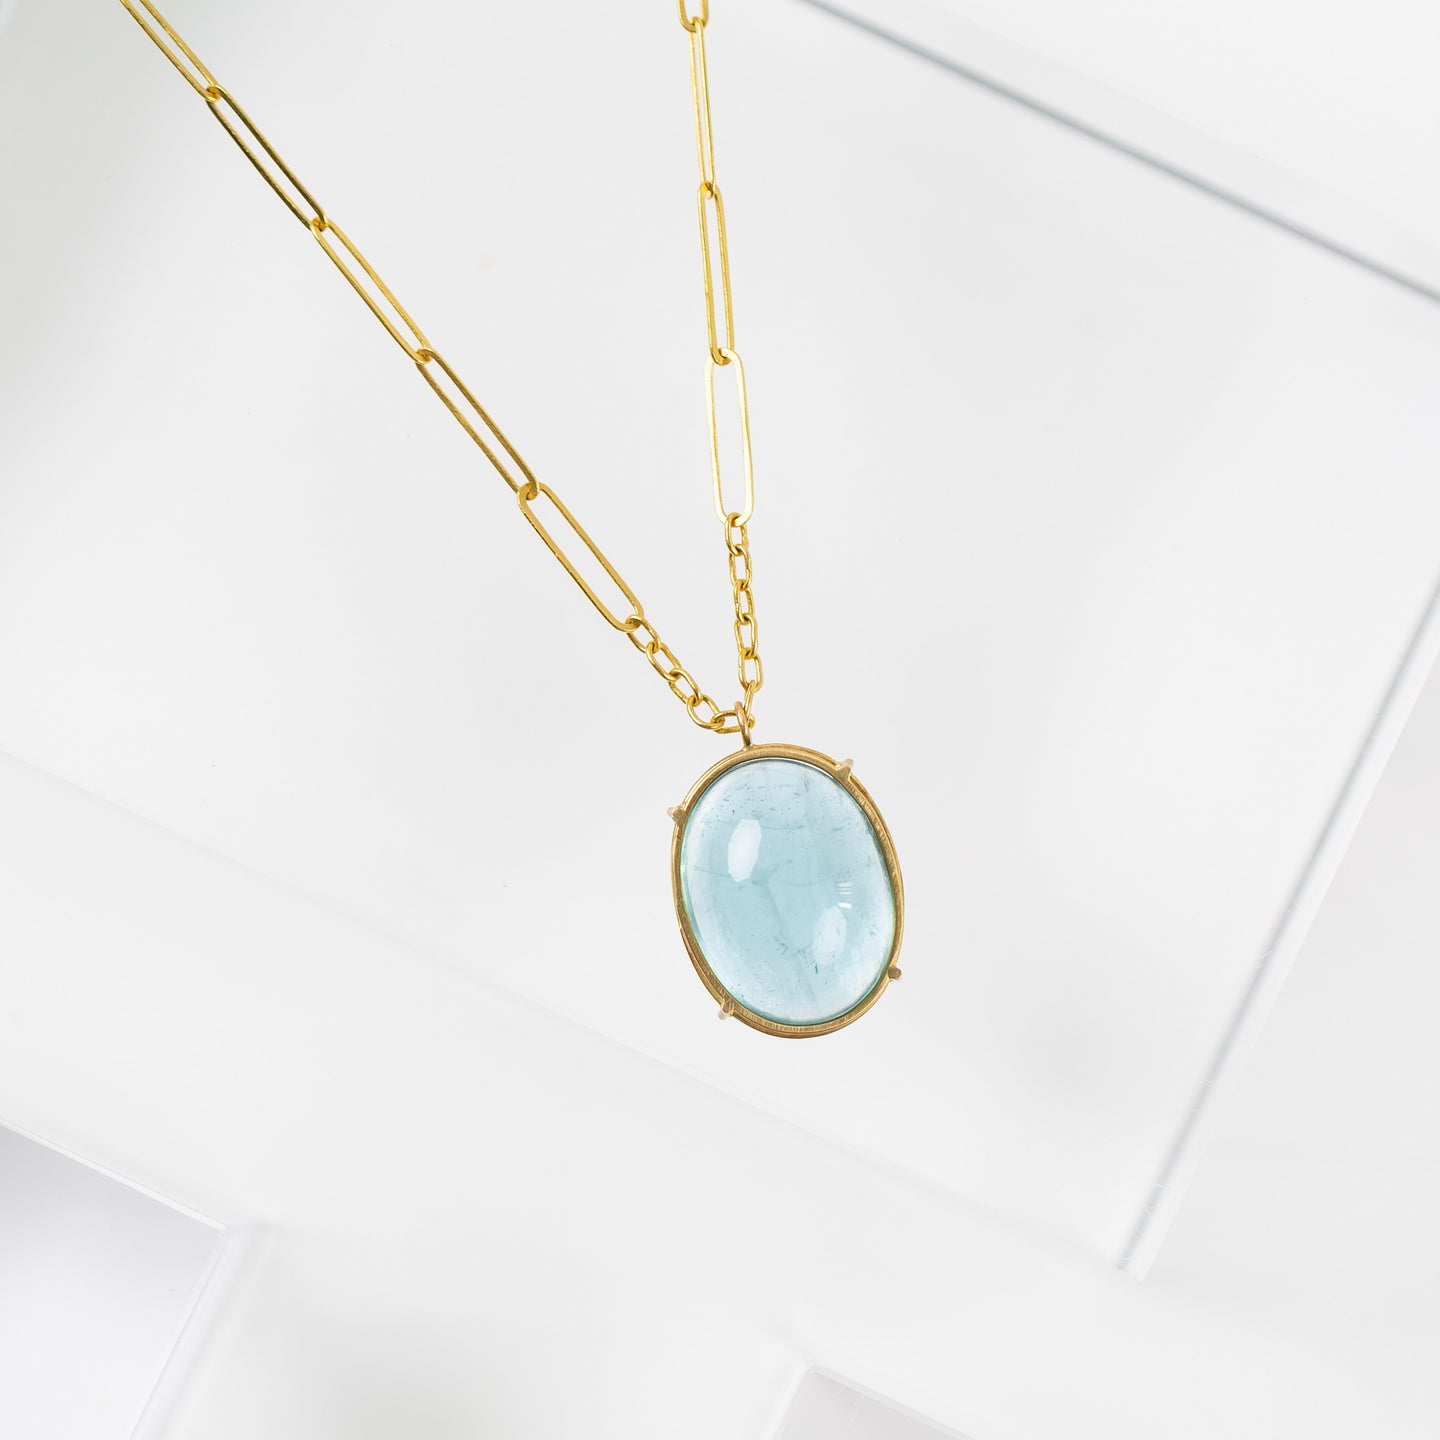 Rosanne Pugliese <br>Aquamarine Cabachon Necklace